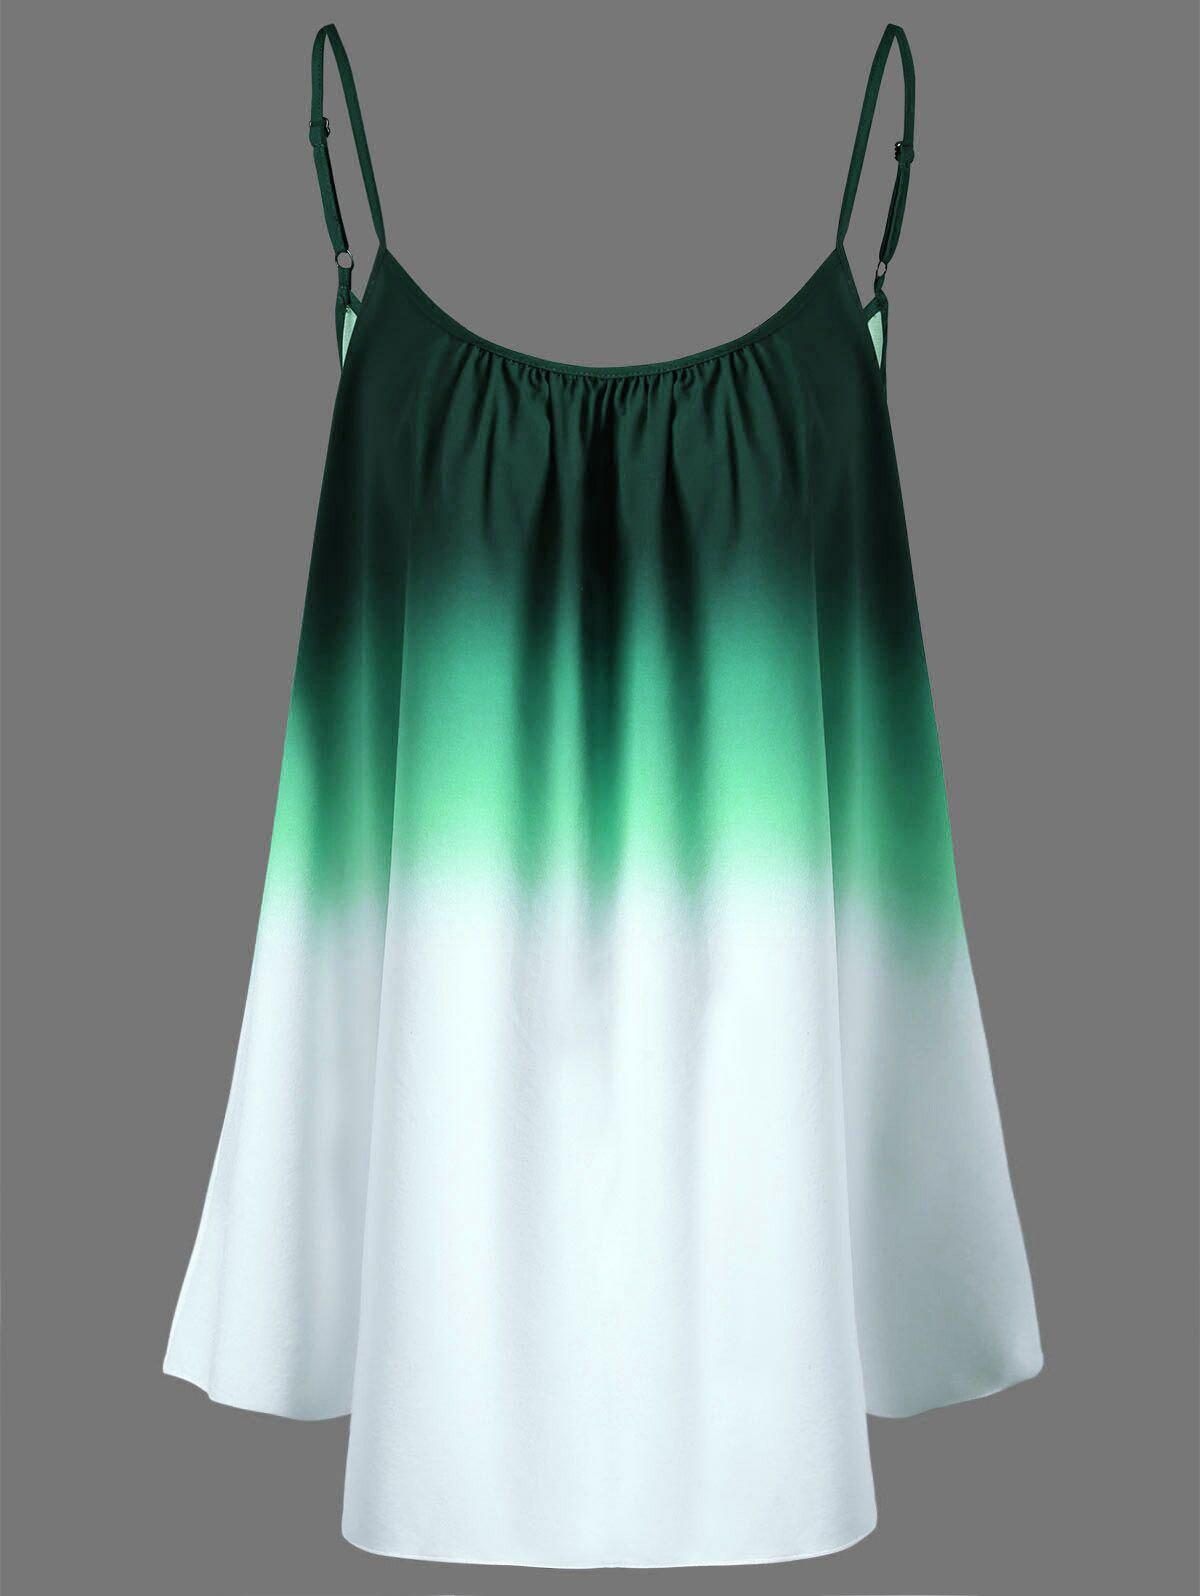 Ombre Plus Size Cami TopWOMEN<br><br>Size: 2XL; Color: GREEN; Material: Cotton,Cotton Blends,Polyester; Shirt Length: Regular; Sleeve Length: Sleeveless; Collar: Spaghetti Strap; Style: Fashion; Season: Spring,Summer; Pattern Type: Print; Weight: 0.1400kg; Package Contents: 1 x Top;